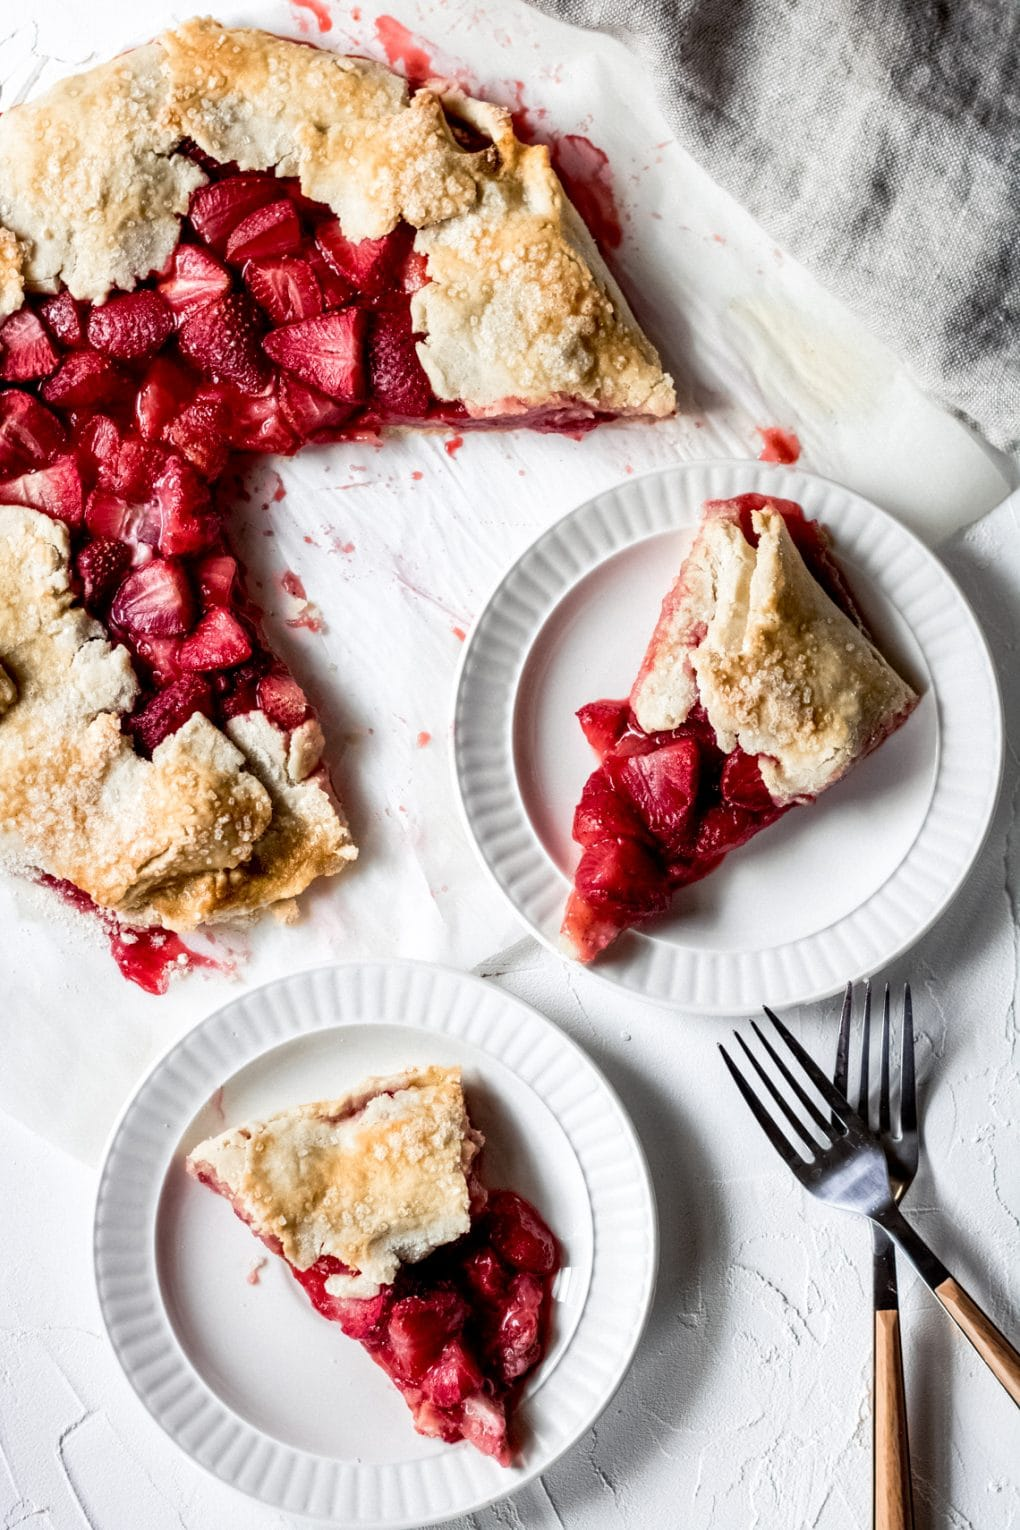 two slices of gluten-free strawberry galette on white plates